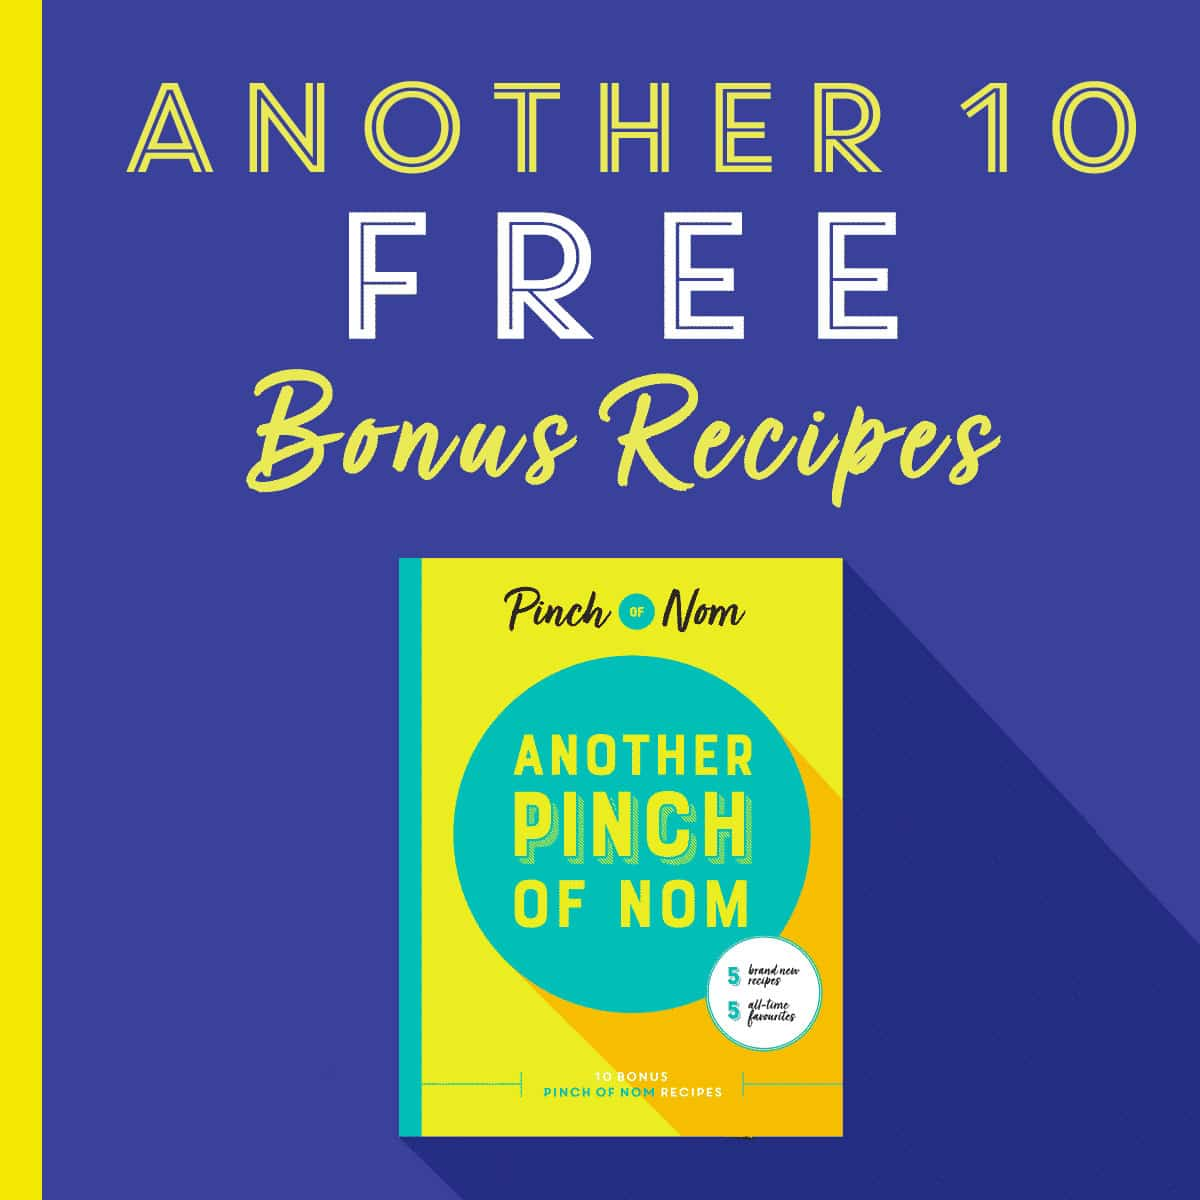 another-10-free-recipes- pinch of nom ebook